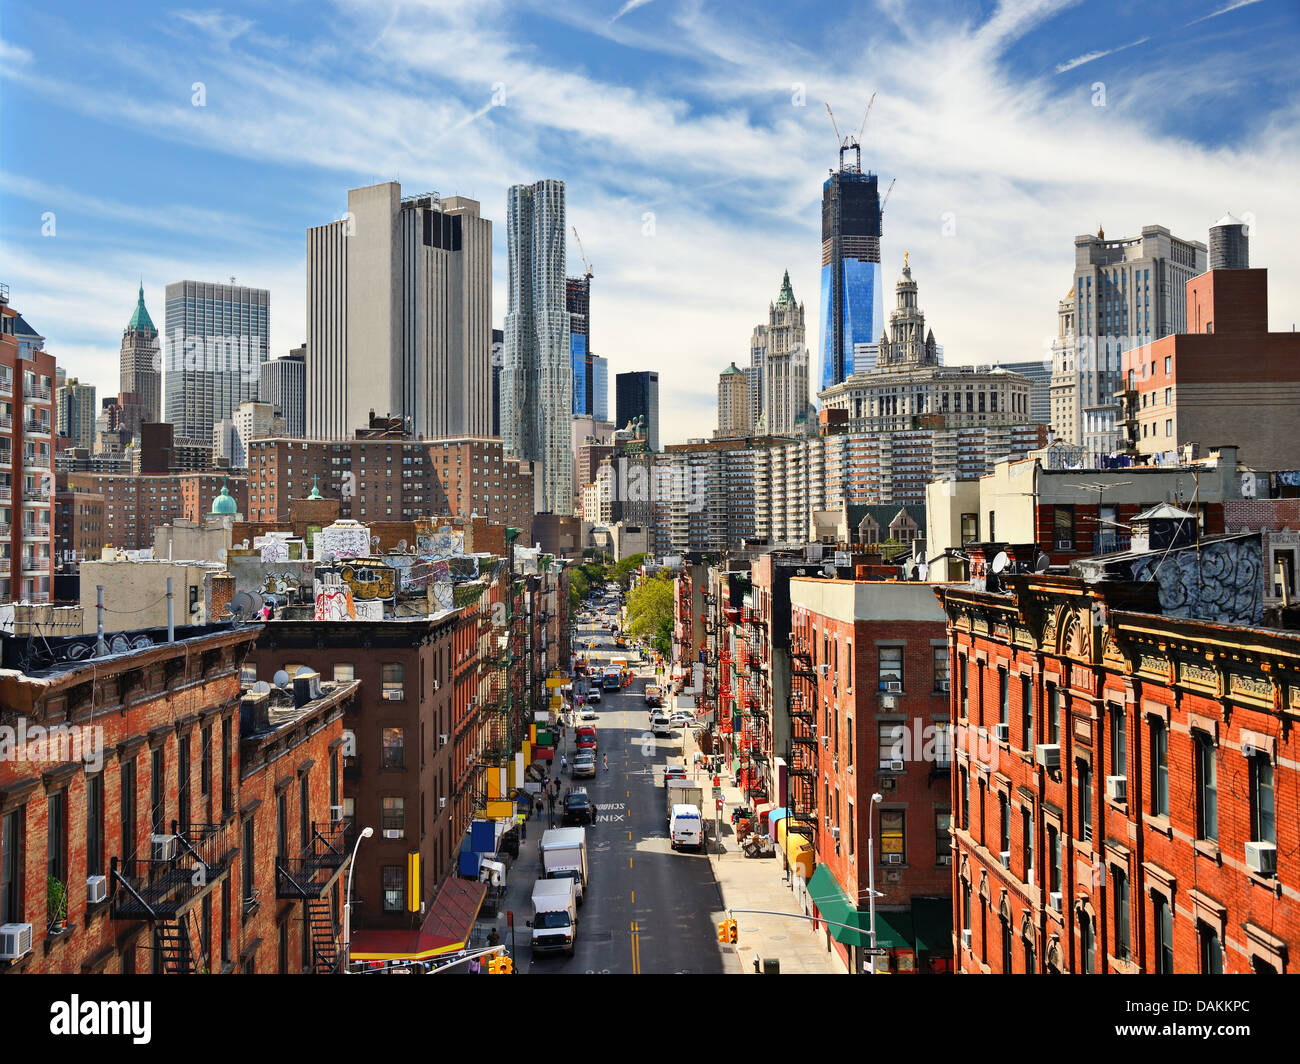 Lower East Side Manhattan Cityscape in New York City. - Stock Image